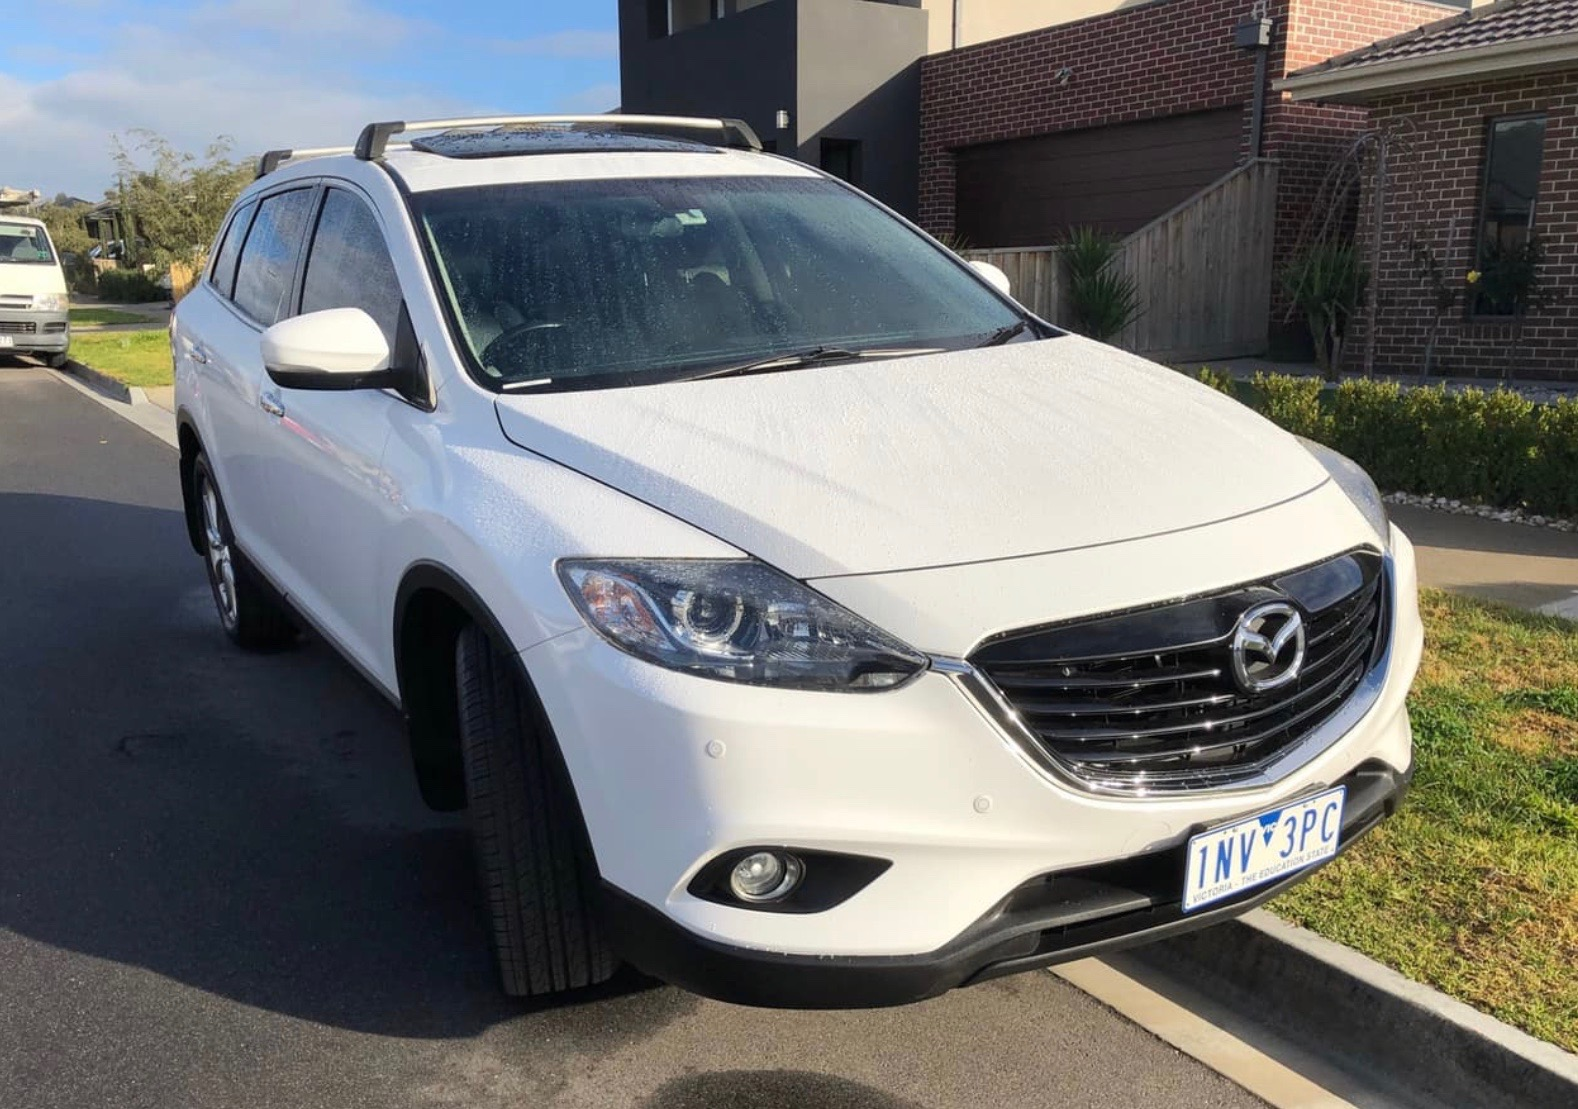 Picture of DELETED's 2012 Mazda CX-9